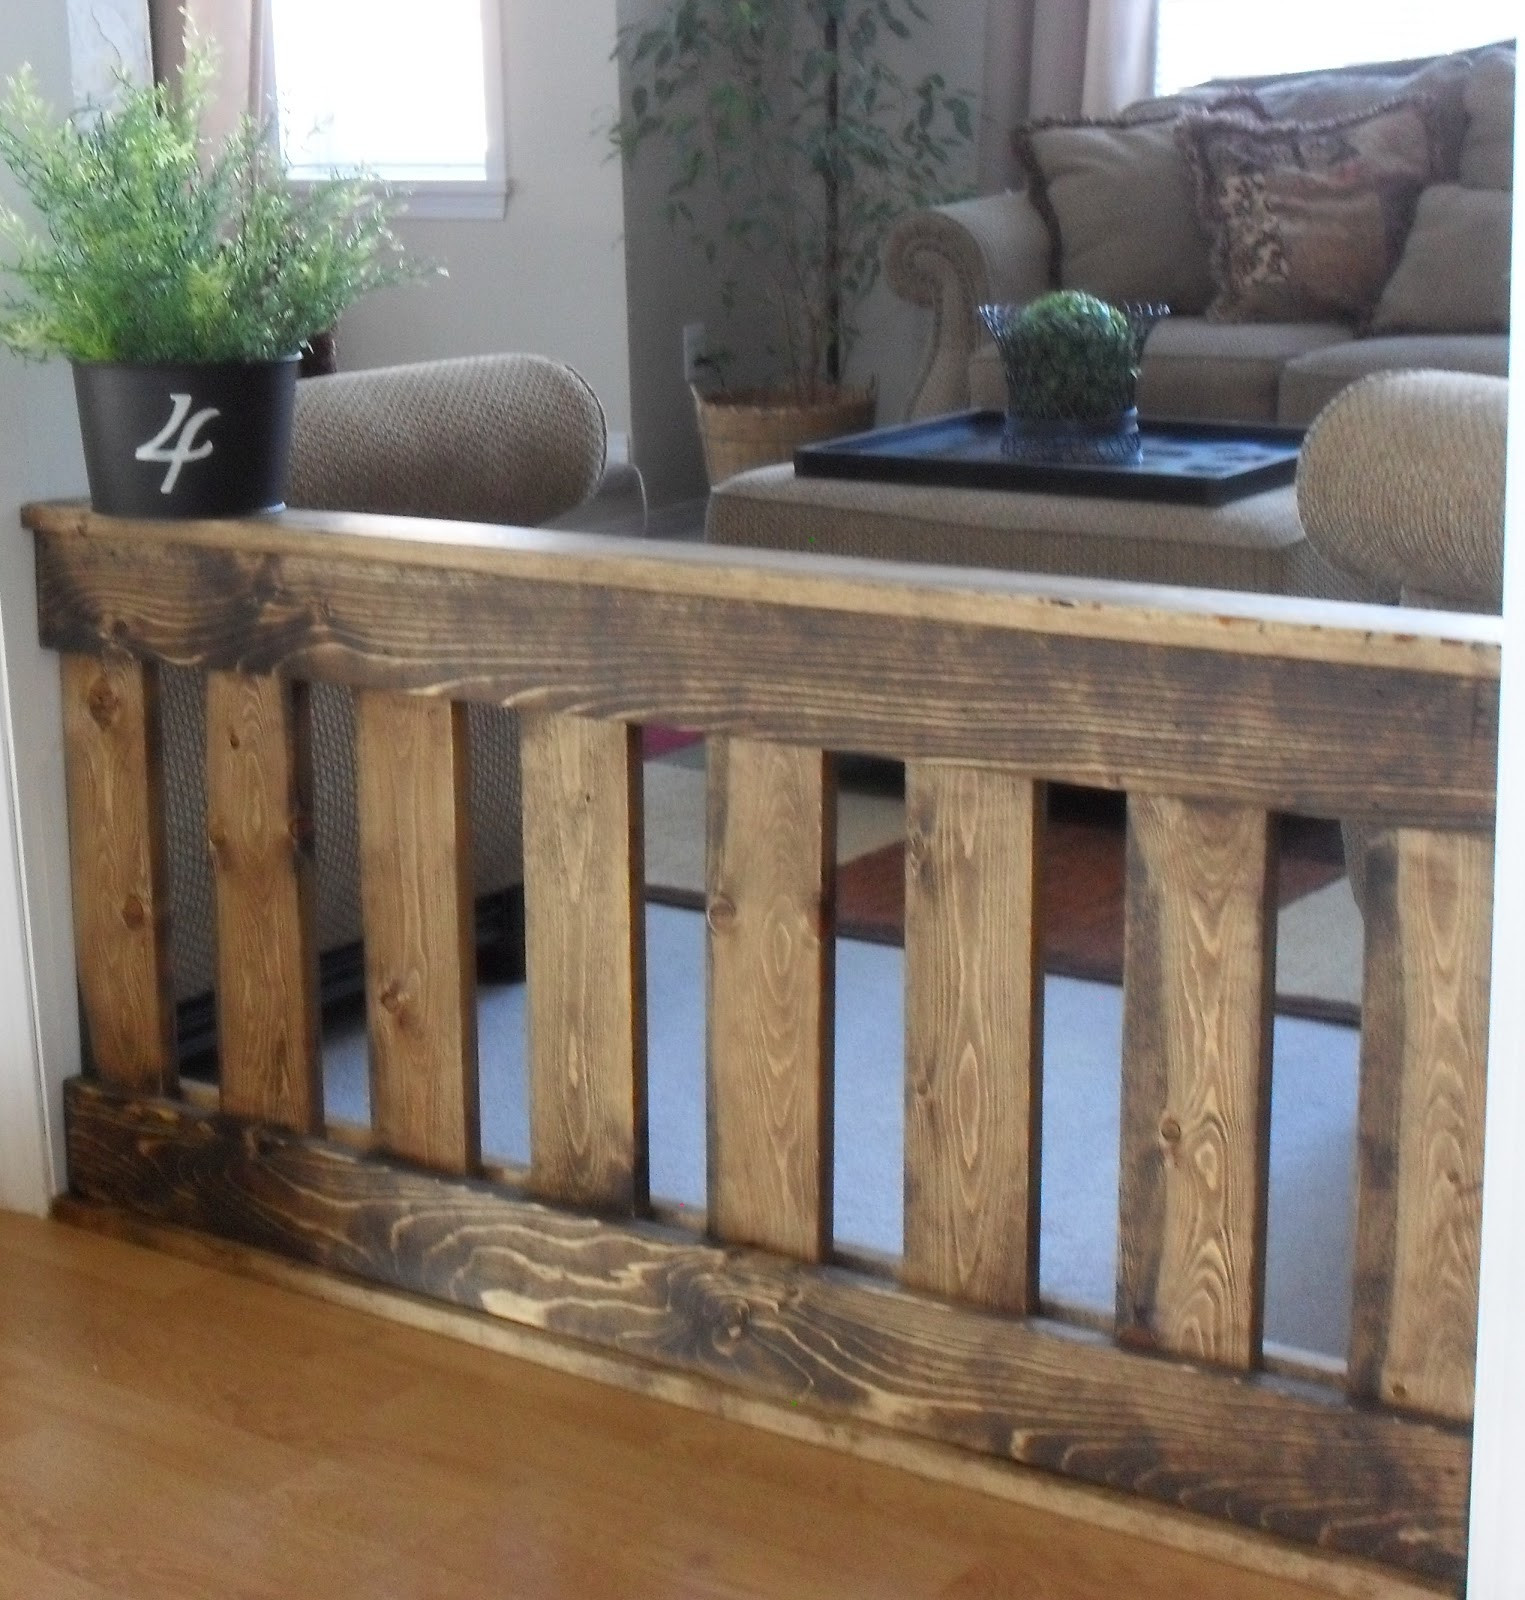 Best ideas about DIY Indoor Dog Gate . Save or Pin Home Frosting Indoor Fencing Now.